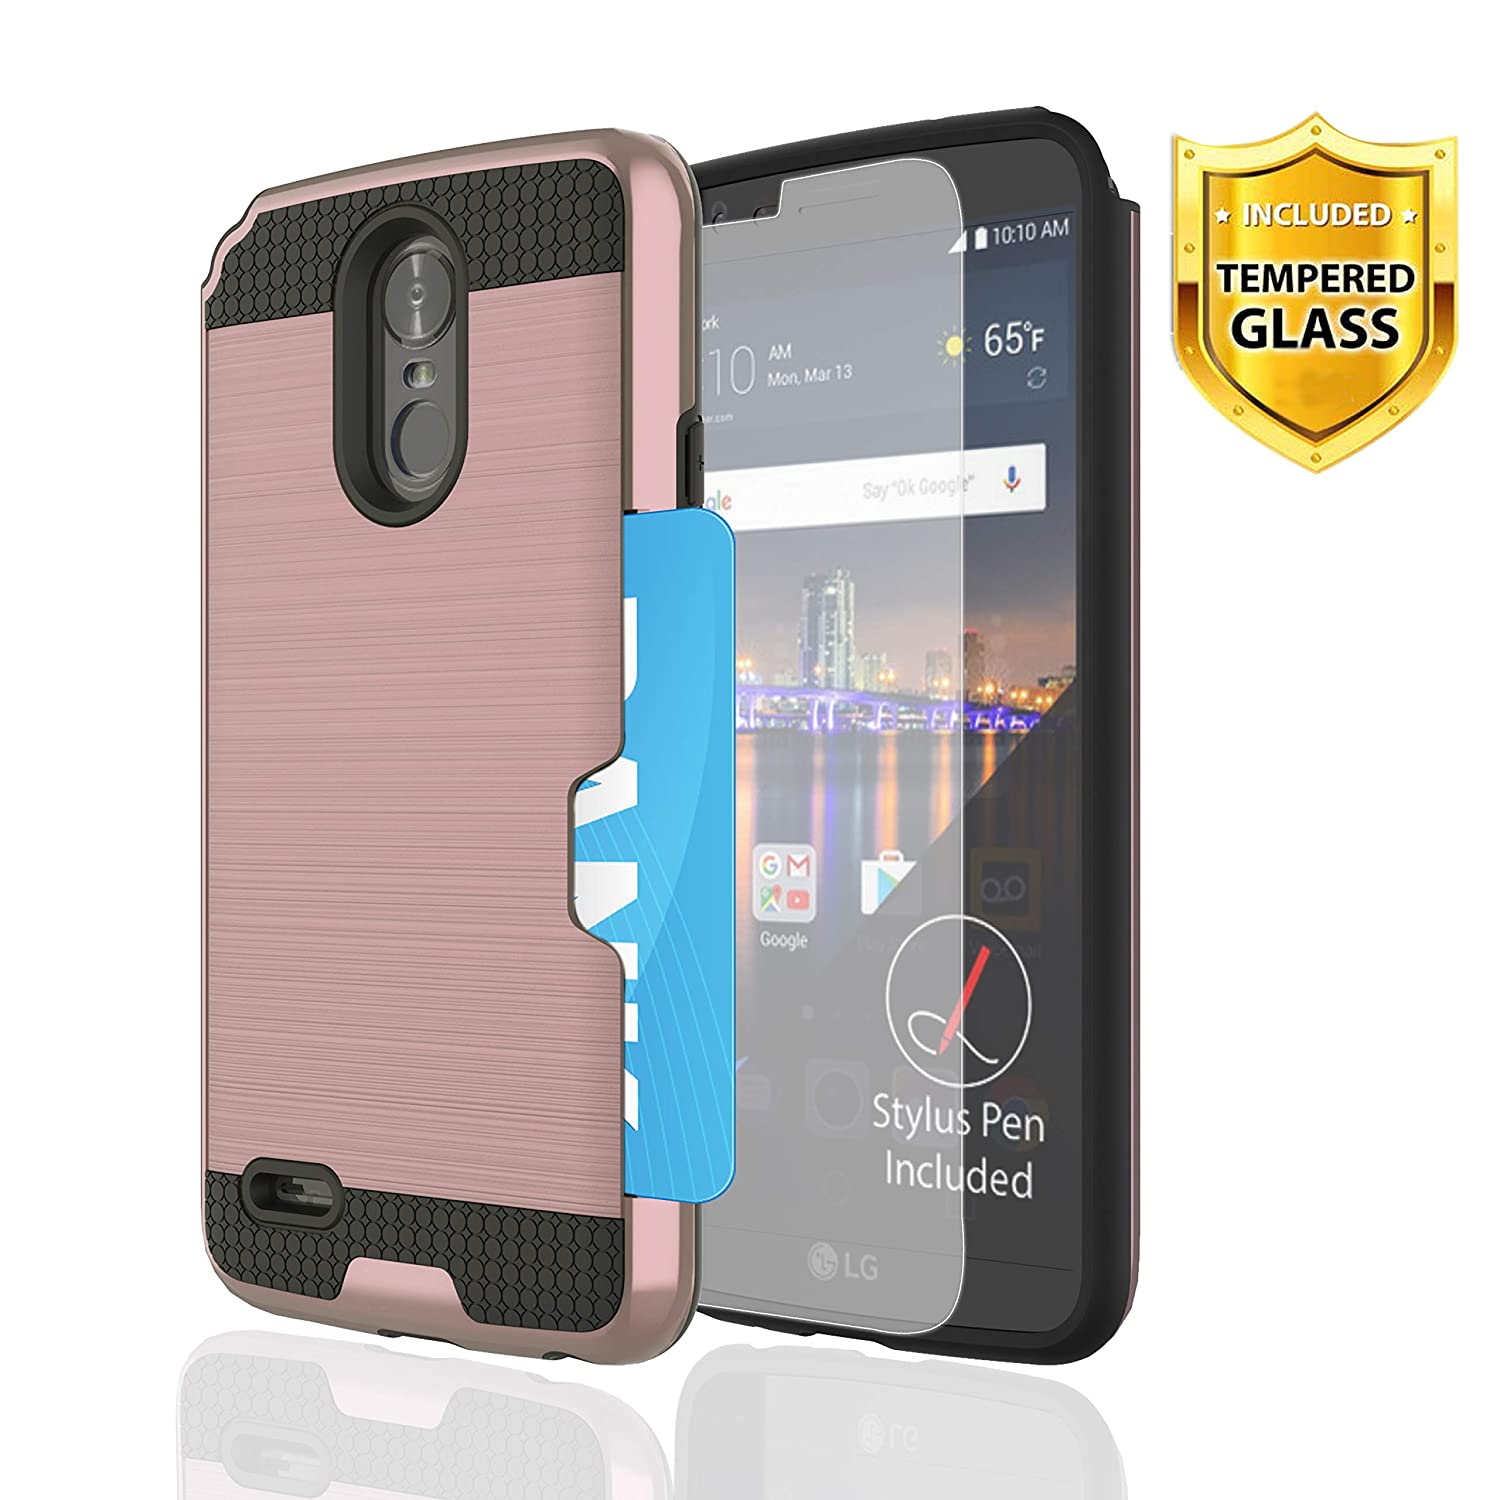 LG Stylo 3 2017 Phone Case,WINGLIKE [Credit Card Slots Holder] PC+TPU Silicone Shockproof Double Protective Cover with [Glass Screen Protector] for LG Stylo 3 Plus-Rose Gold